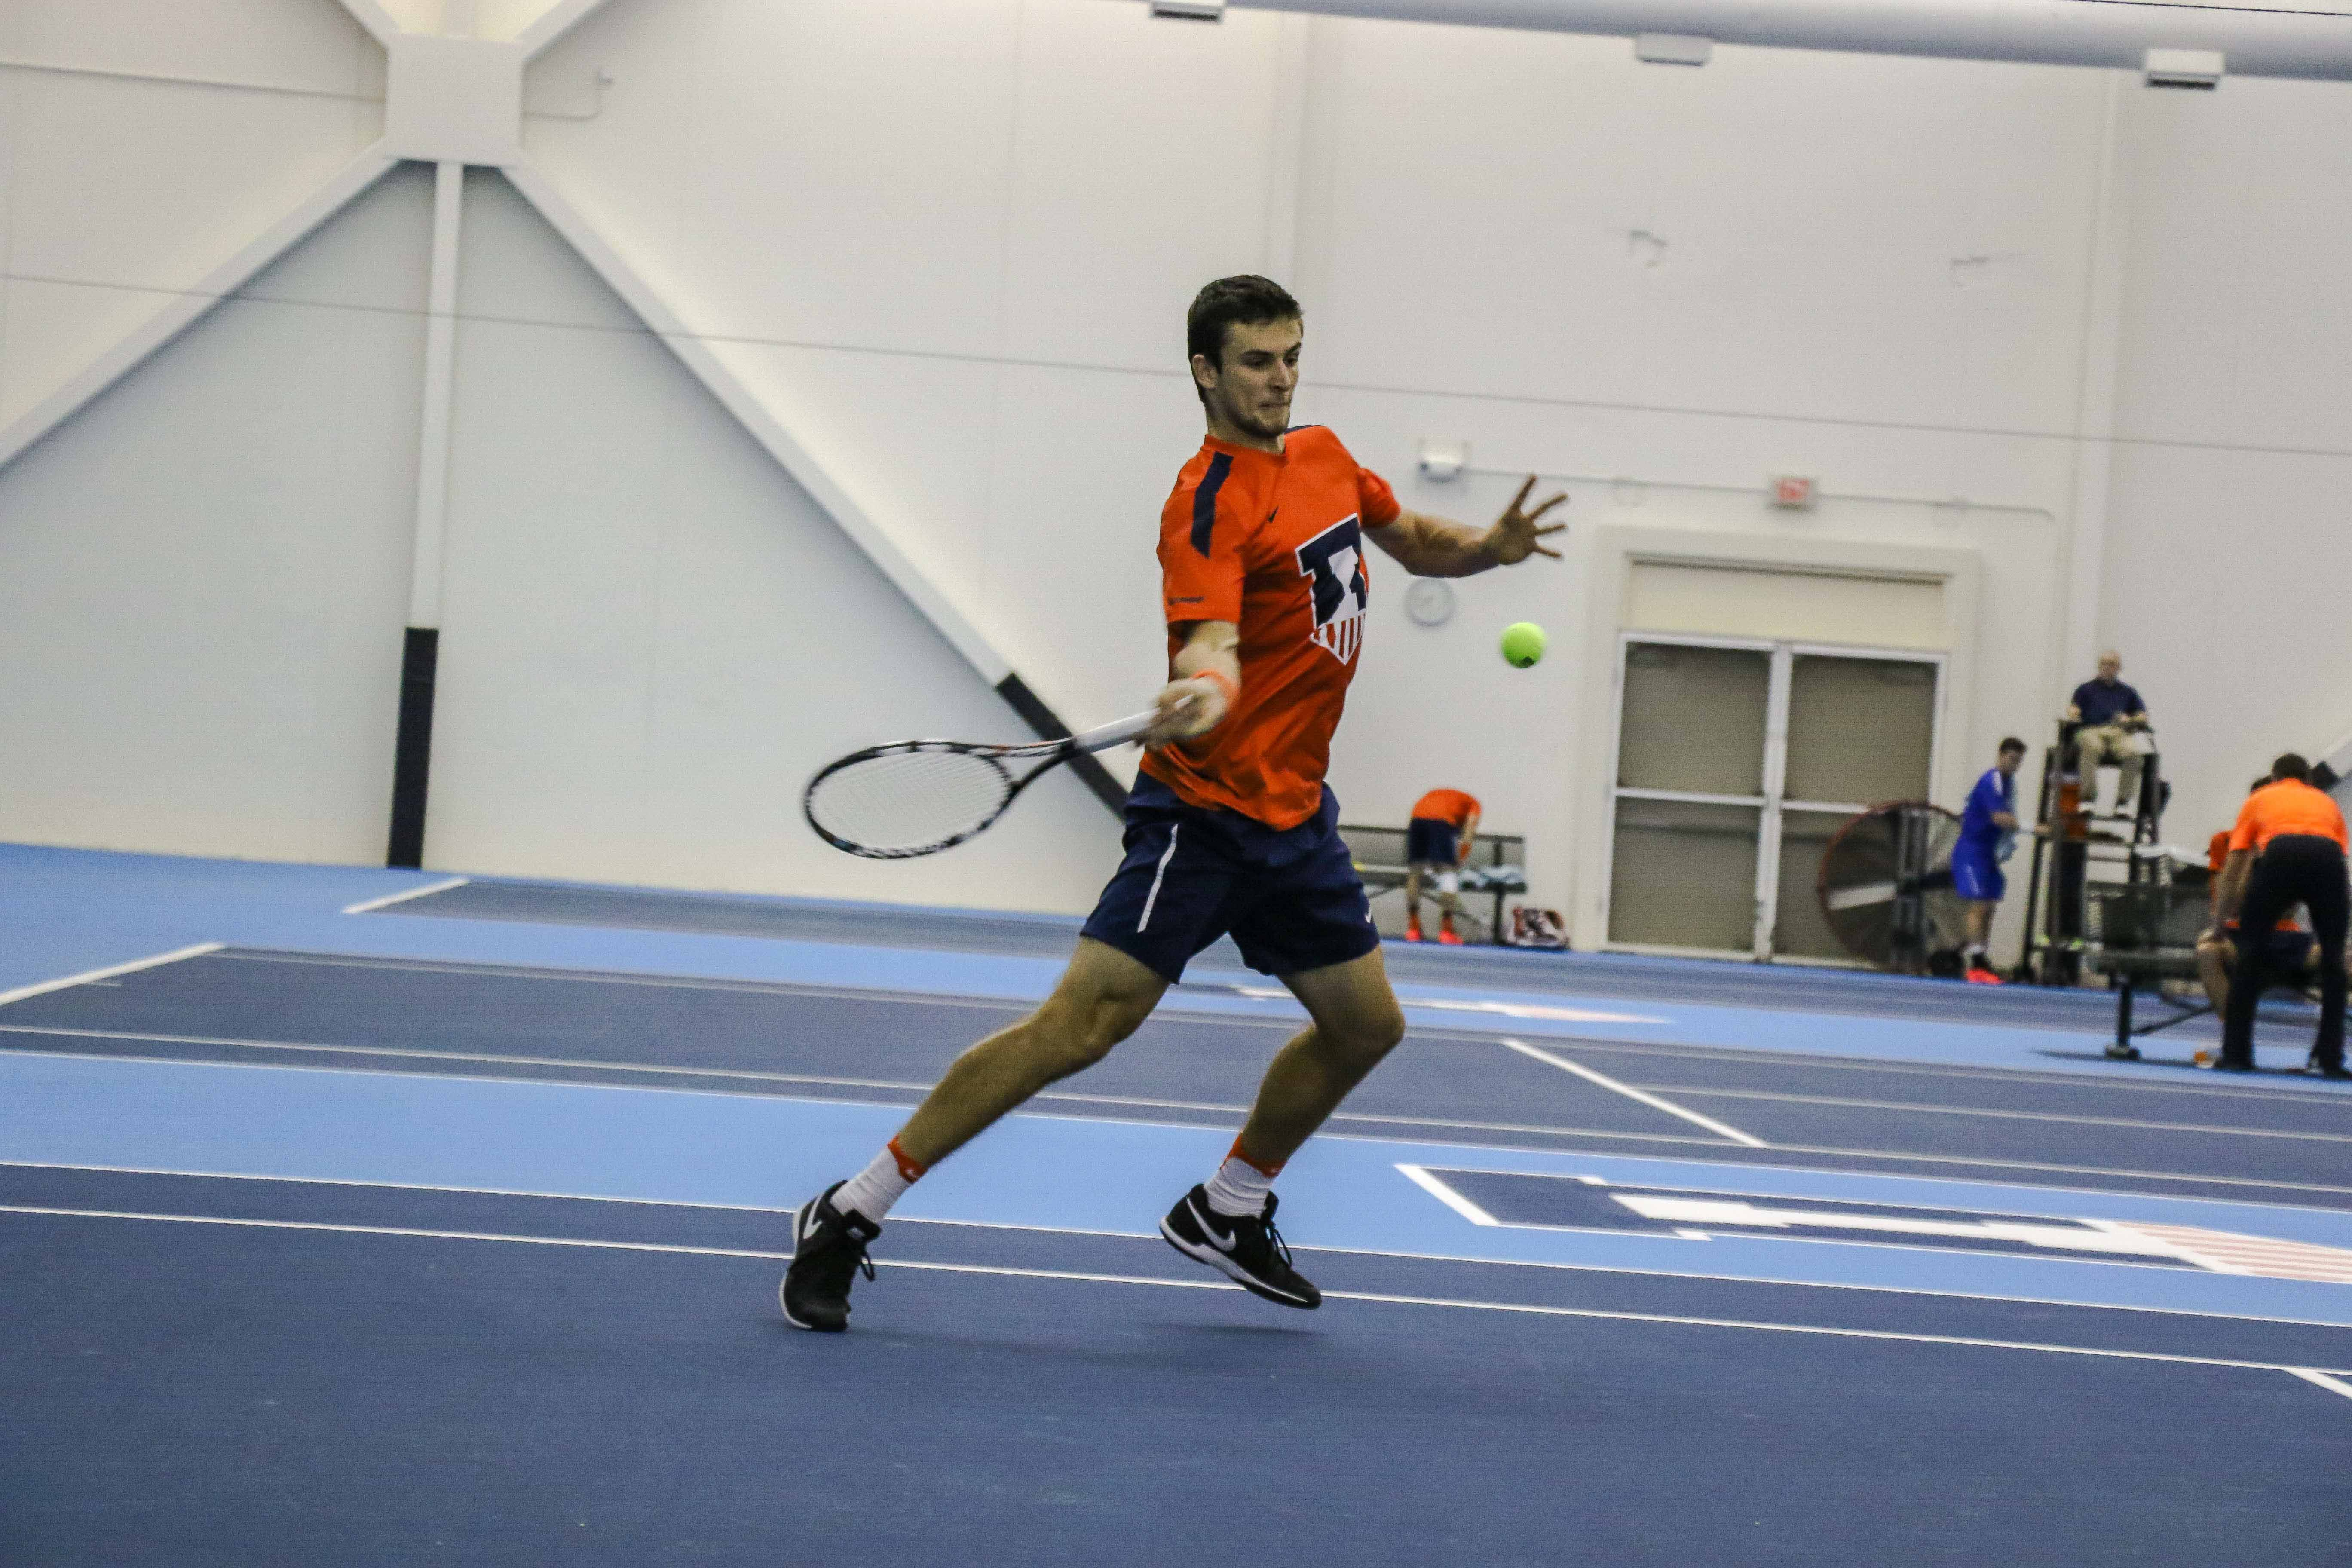 Illinois'  Aleks Vukic strikes back the ball in the meet against University of Kentucky on Friday, Feb. 24 at the Atkins Tennis Center in Urbana.